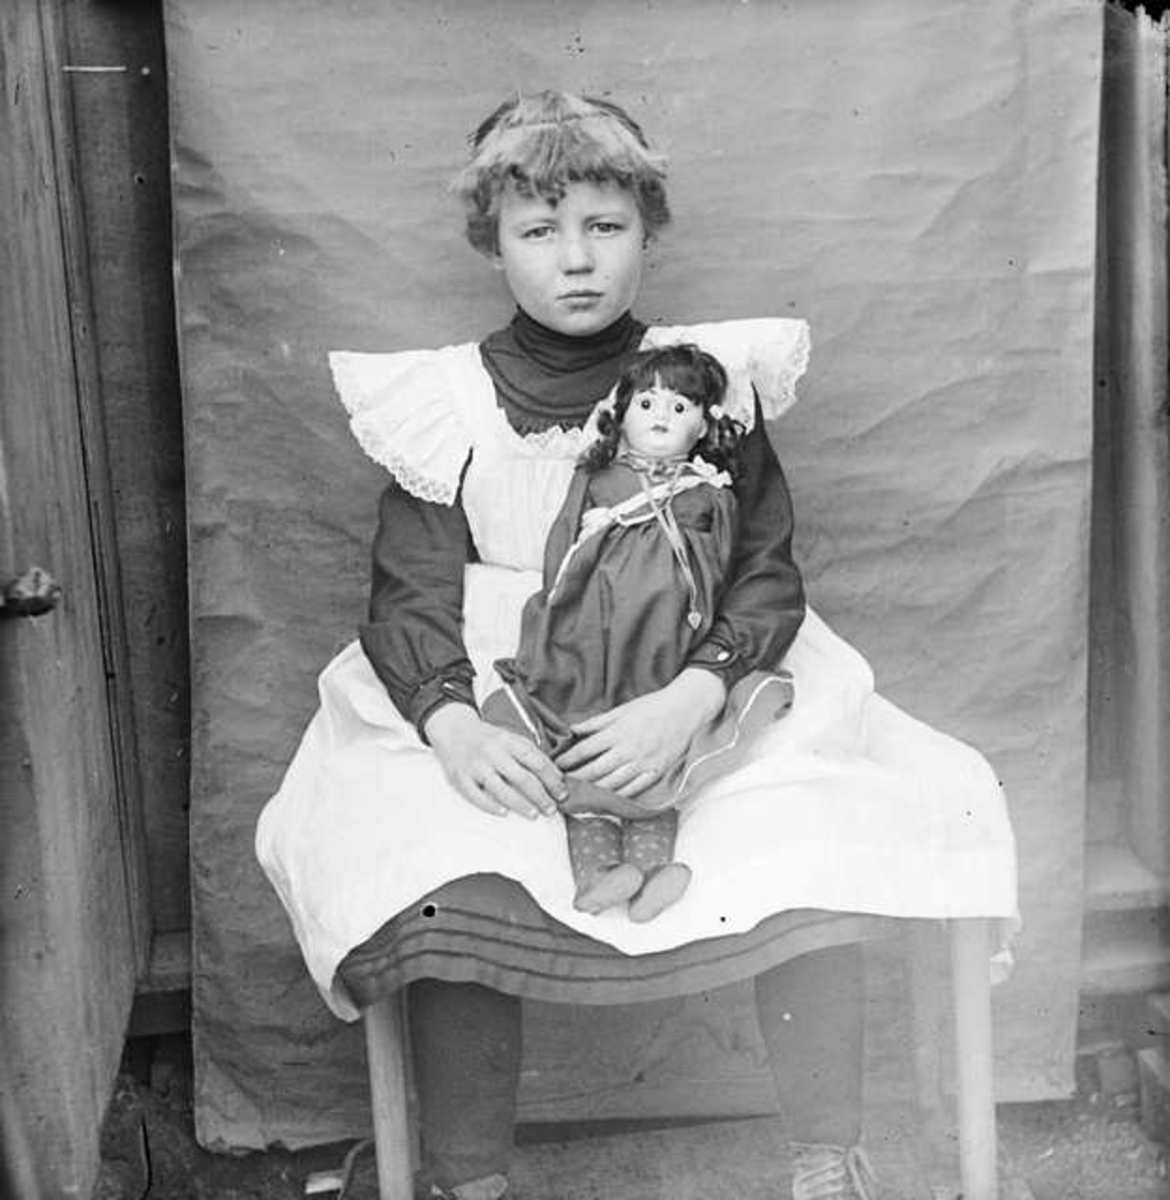 Child Wearing a Pinafore